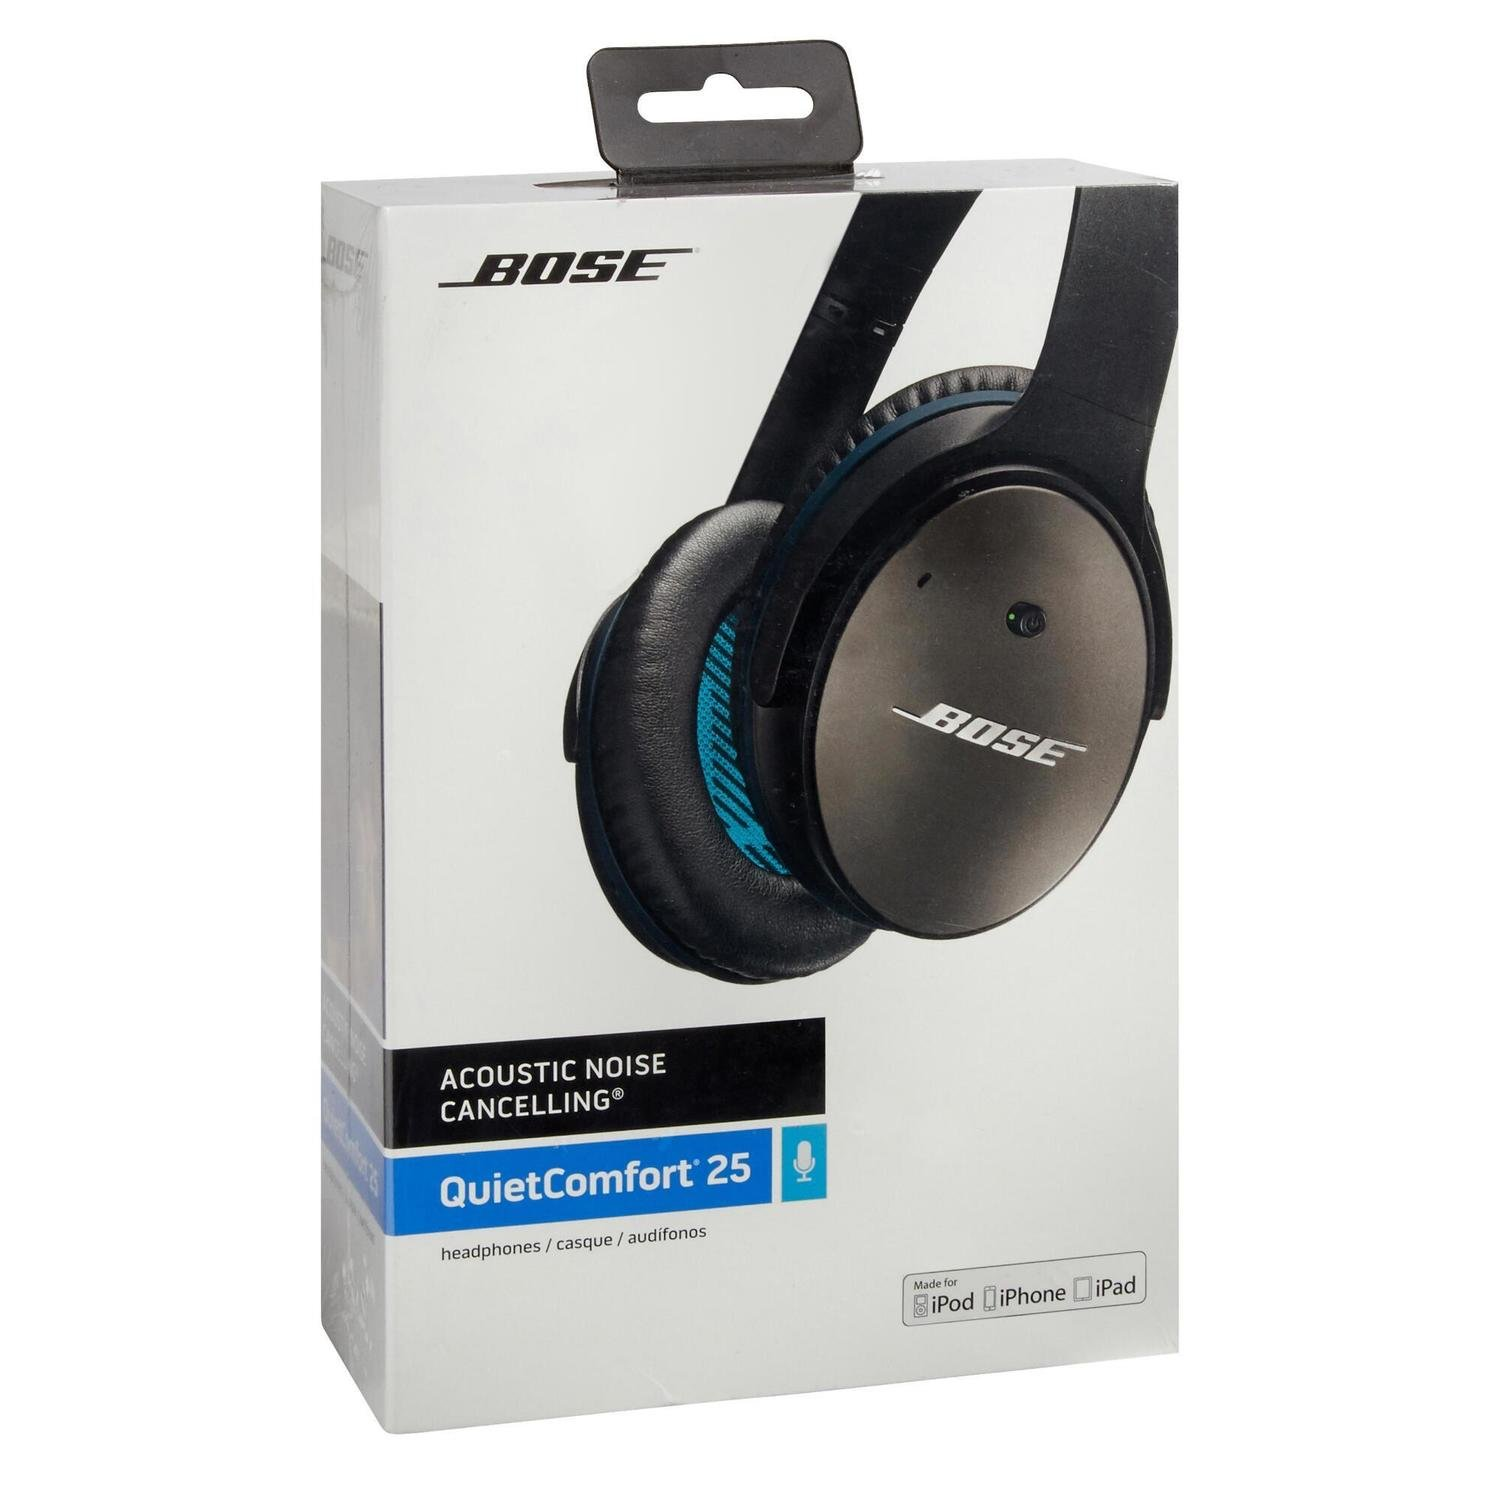 09498d168f3 BOSE QuietComfort QC25 Acoustic Noise Cancelling headphones - Apple